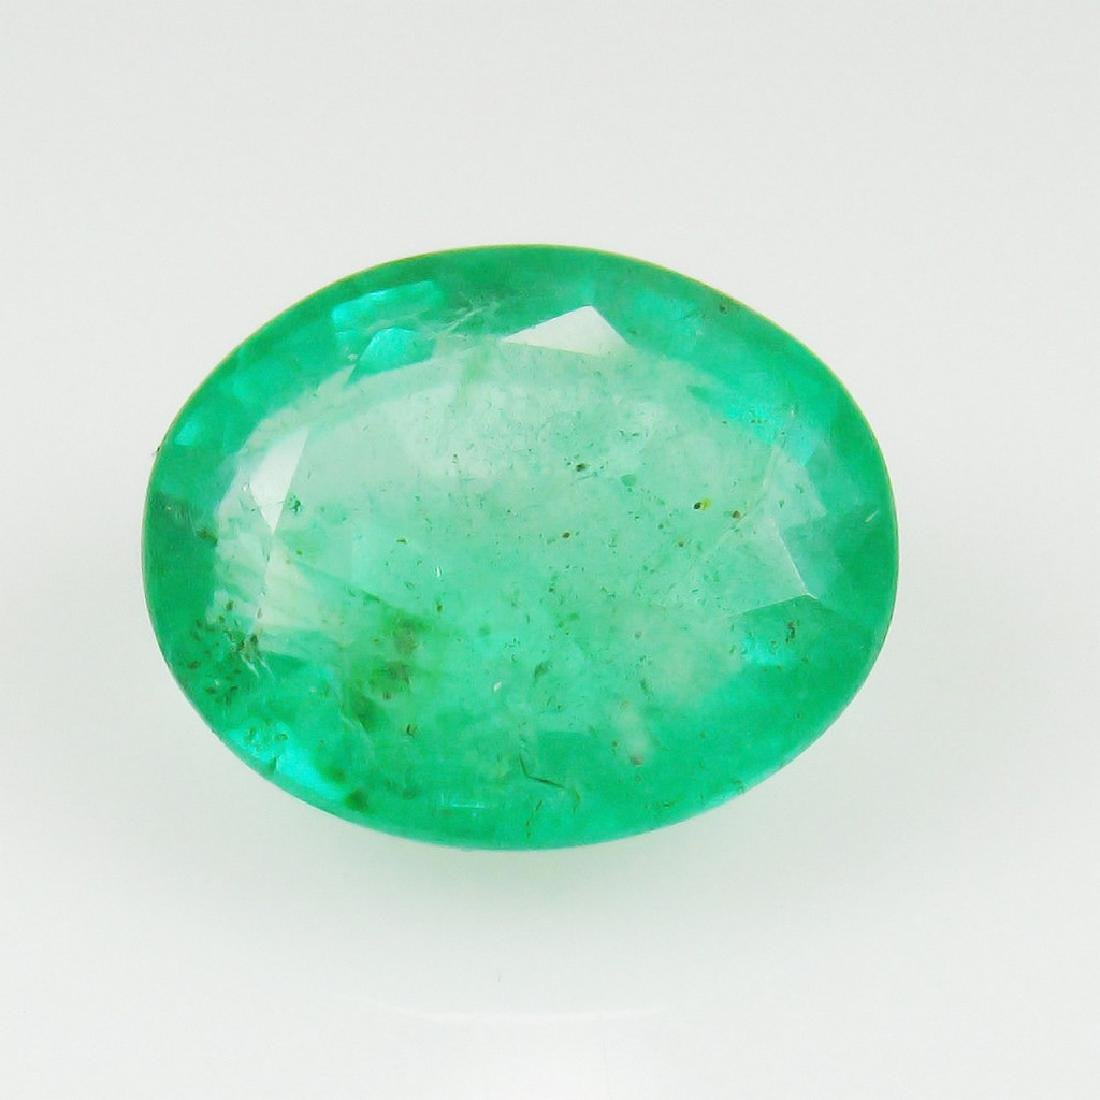 2.60 Carat Natural Zambian Loose Oval cut Emerald